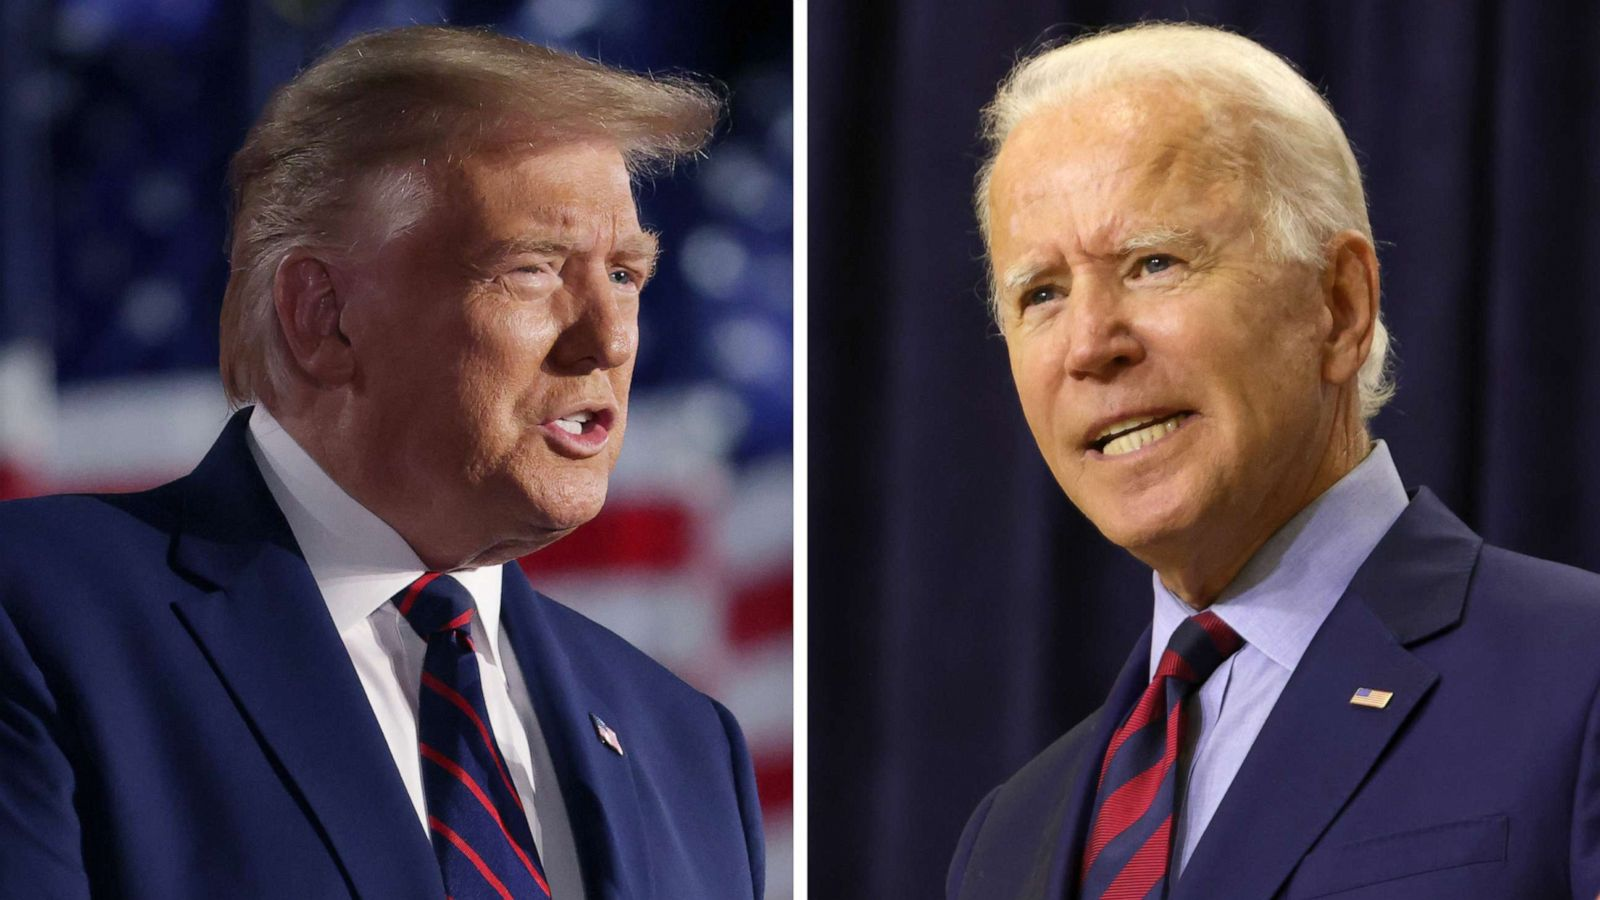 debate-donald-trump-joe-biden-split-gty-llr-200925_1601067026876_hpMain_16x9_1600